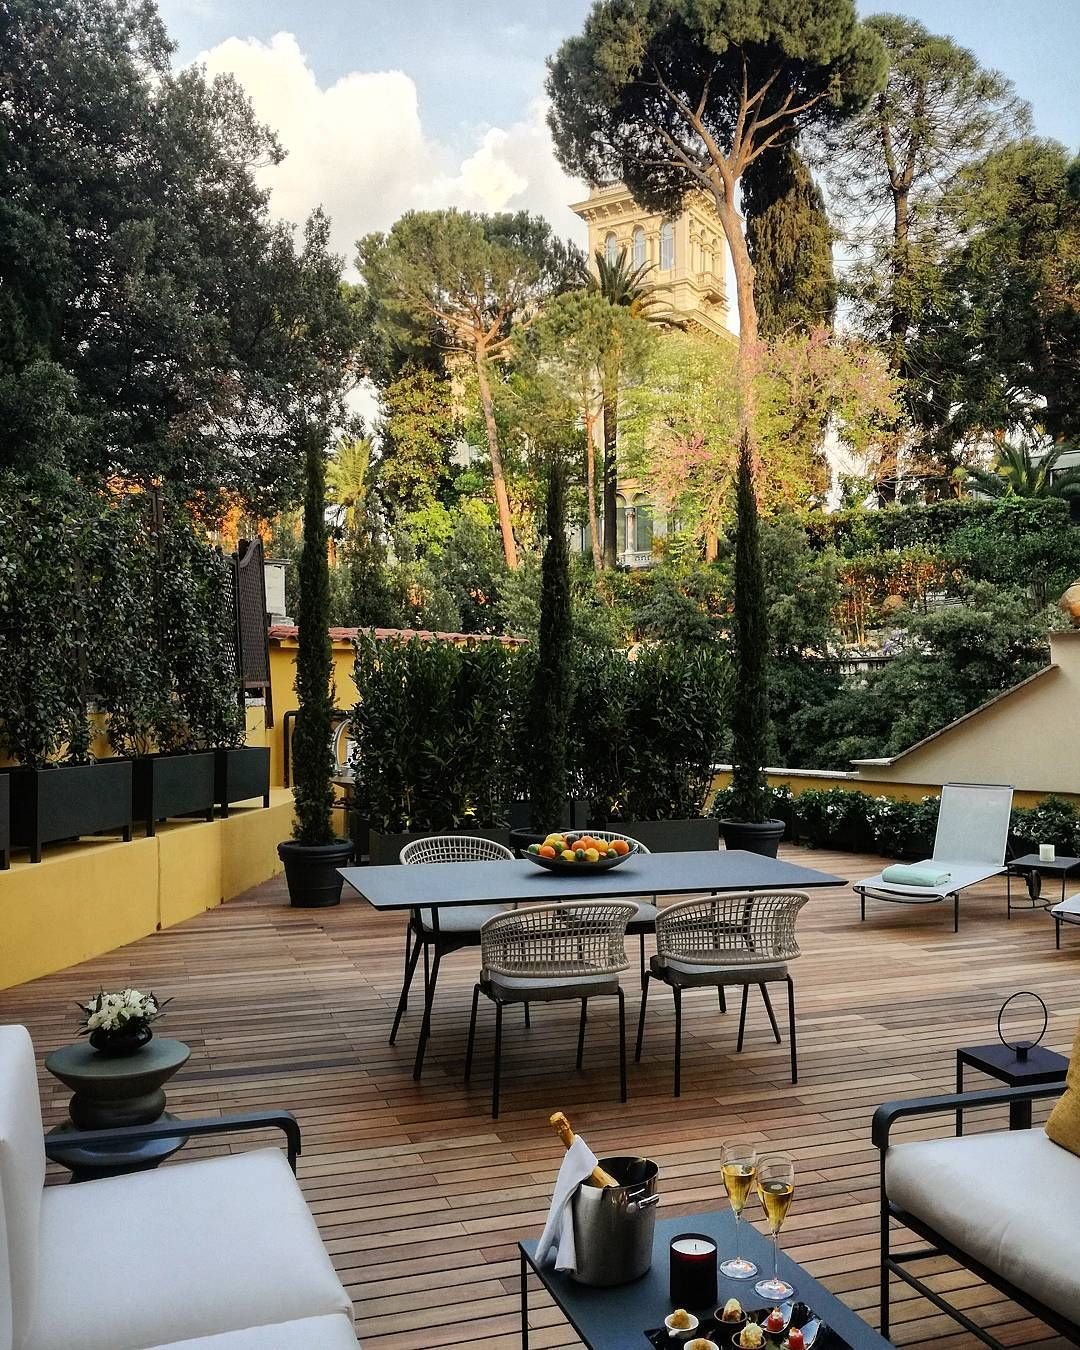 Aperitivo Time In Our Aurora Suite Terrace At Hotel Eden Rome Dcmoments